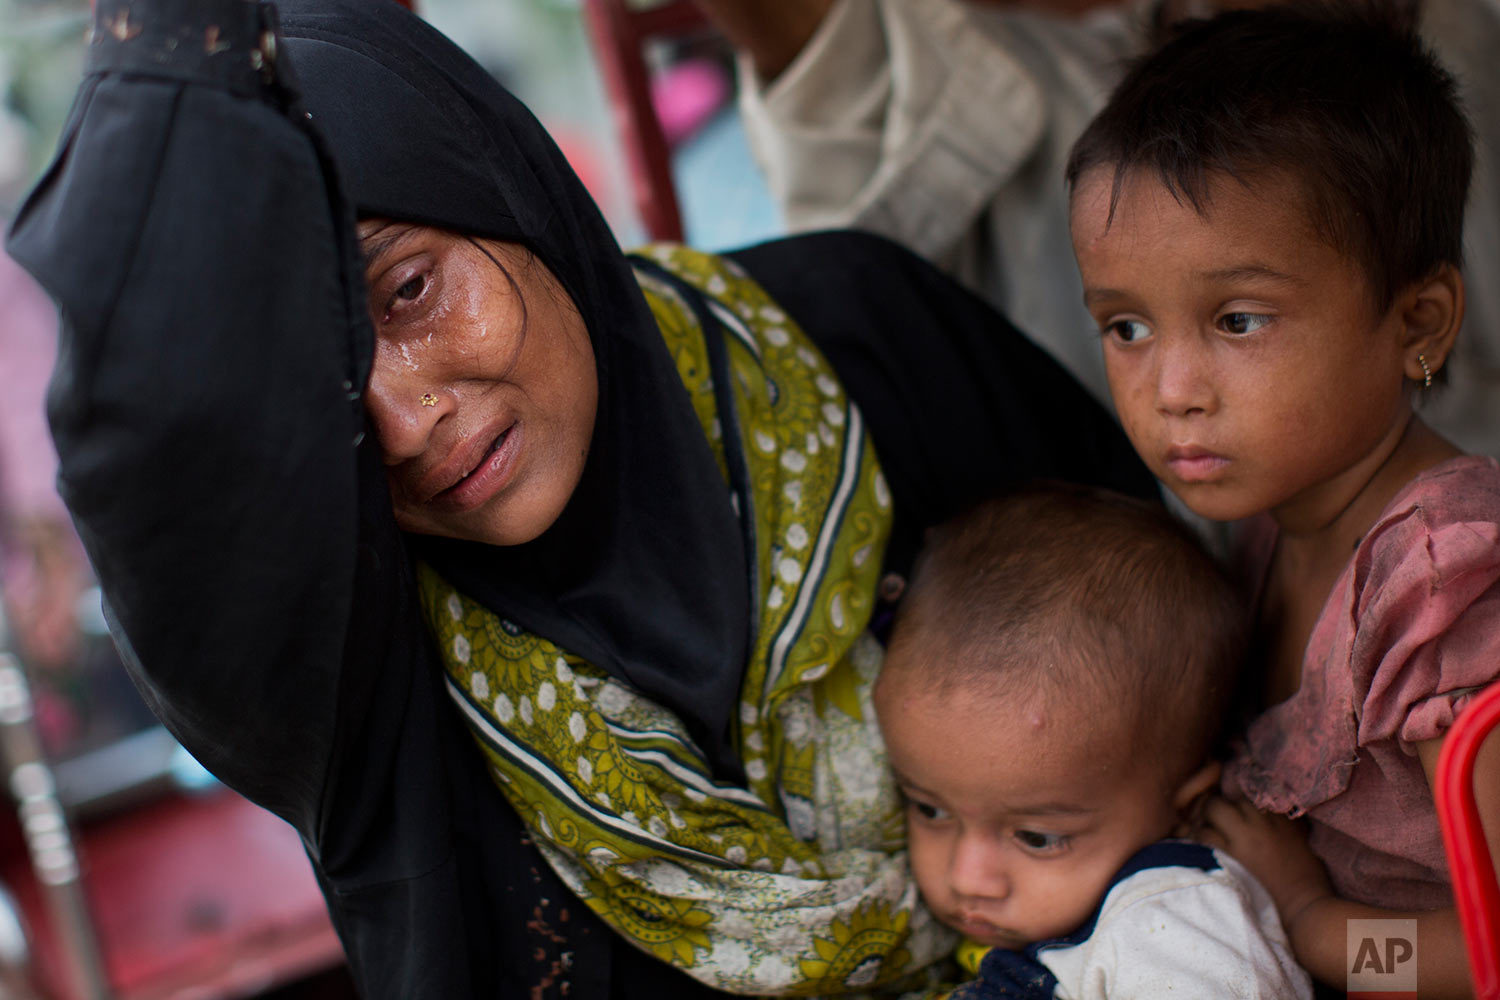 An exhausted Rohingya woman arrives with her children at Kutupalong refugee camp after crossing from Myanmmar to the Bangladesh side of the border, in Ukhia, Tuesday, Sept. 5, 2017. The family said they had lost several family members in Myanmar. Tens of thousands of Rohingya Muslims, fleeing the latest round of violence to engulf their homes in Myanmar, have been walking for days or handing over their meager savings to Burmese and Bangladeshi smugglers to escape what they describe as certain death. (AP Photo/Bernat Armangue)